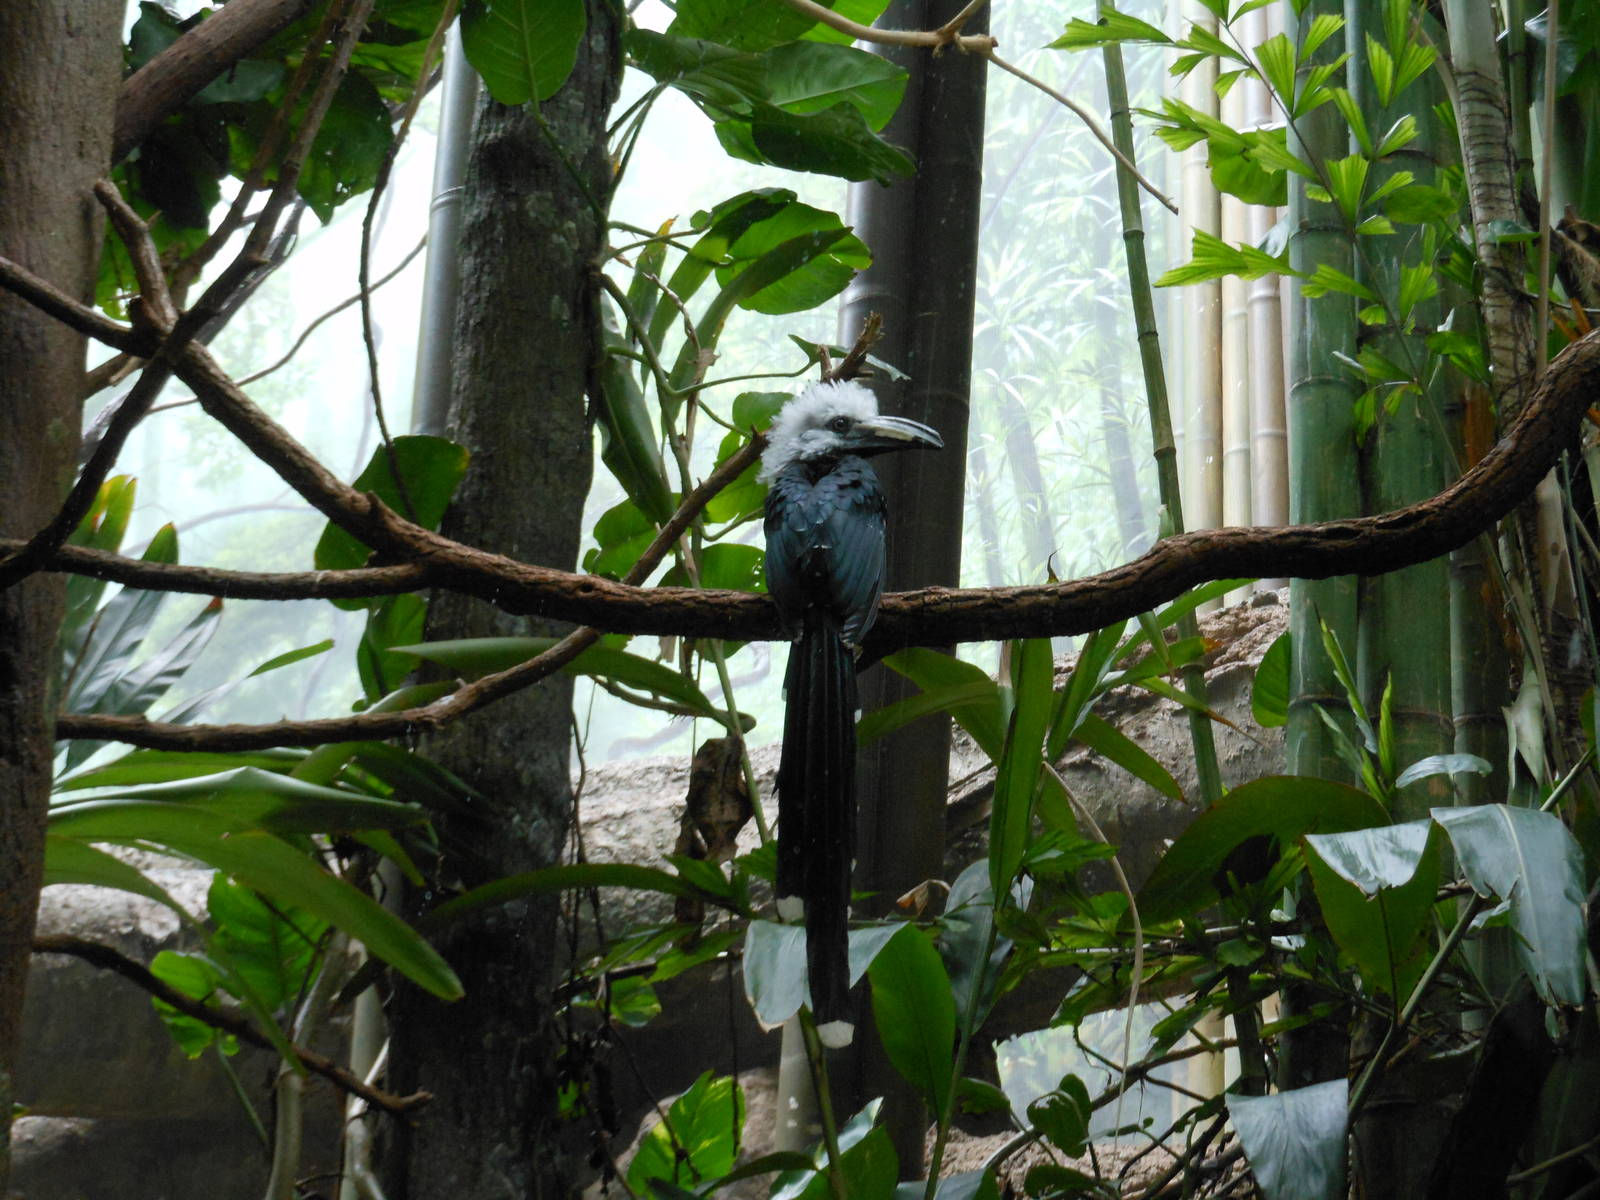 Bronx Zoo White Crested Hornbill Congo Gorilla Forest Zoochat